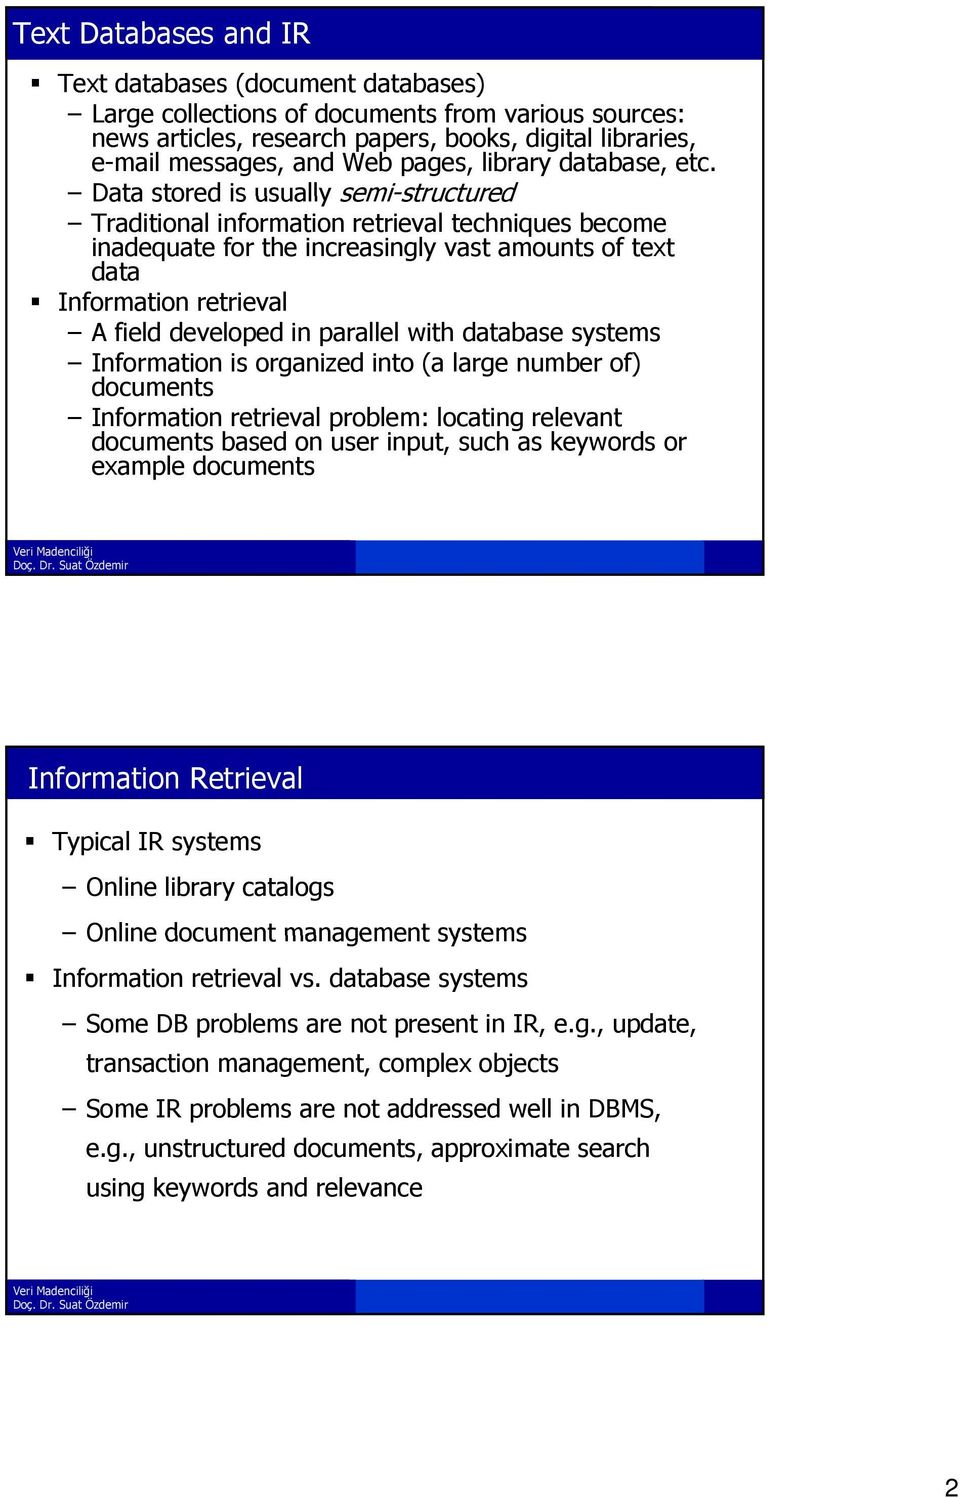 Data stored is usually semi-structured structured Traditional information retrieval techniques become inadequate for the increasingly vast amounts of text data Information retrieval A field developed